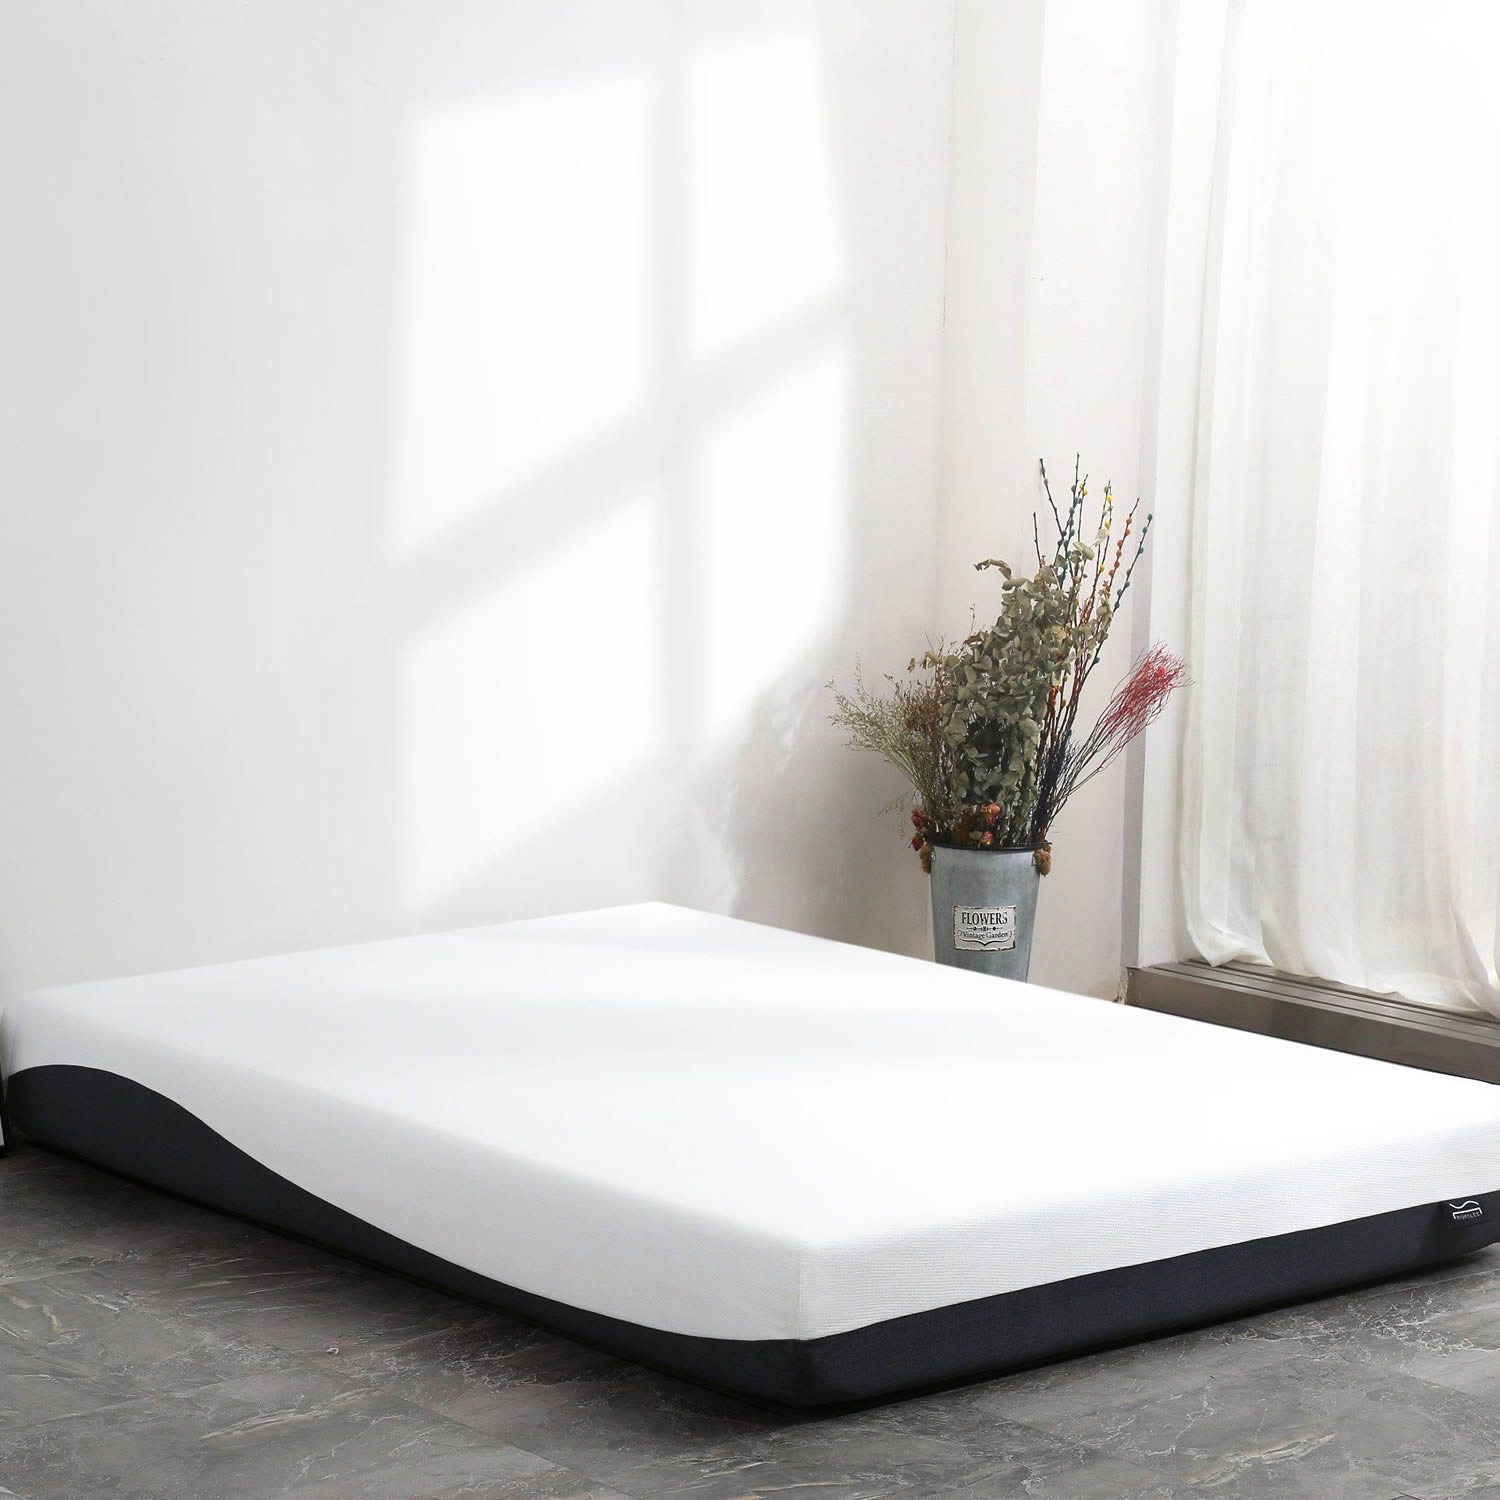 A Nighslee mattress  works on most surfaces including the Floor if you prefer and very easy to unpack